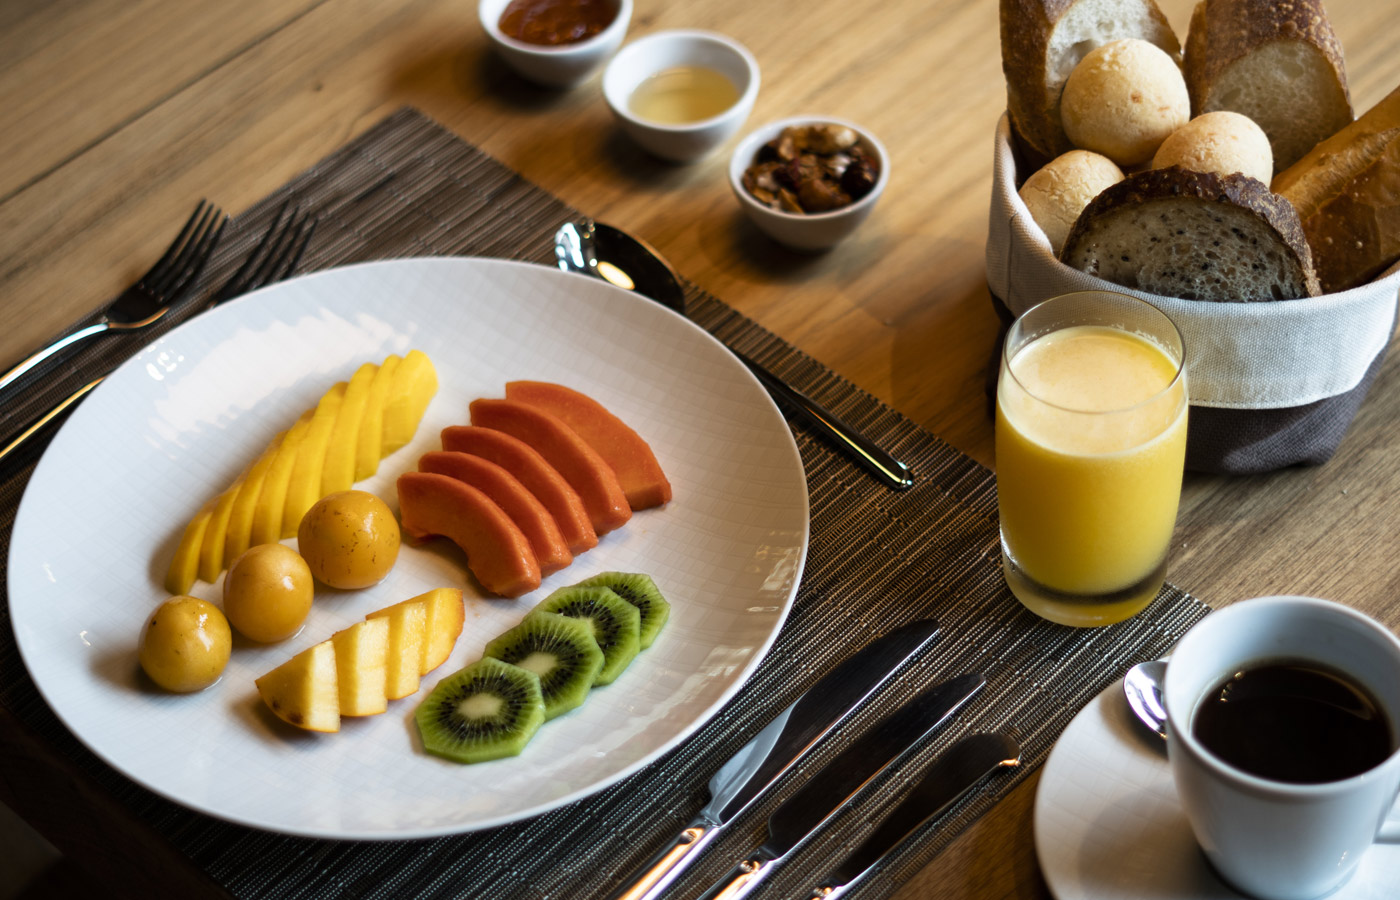 Breakfast at Hotel Casana is included in the rate